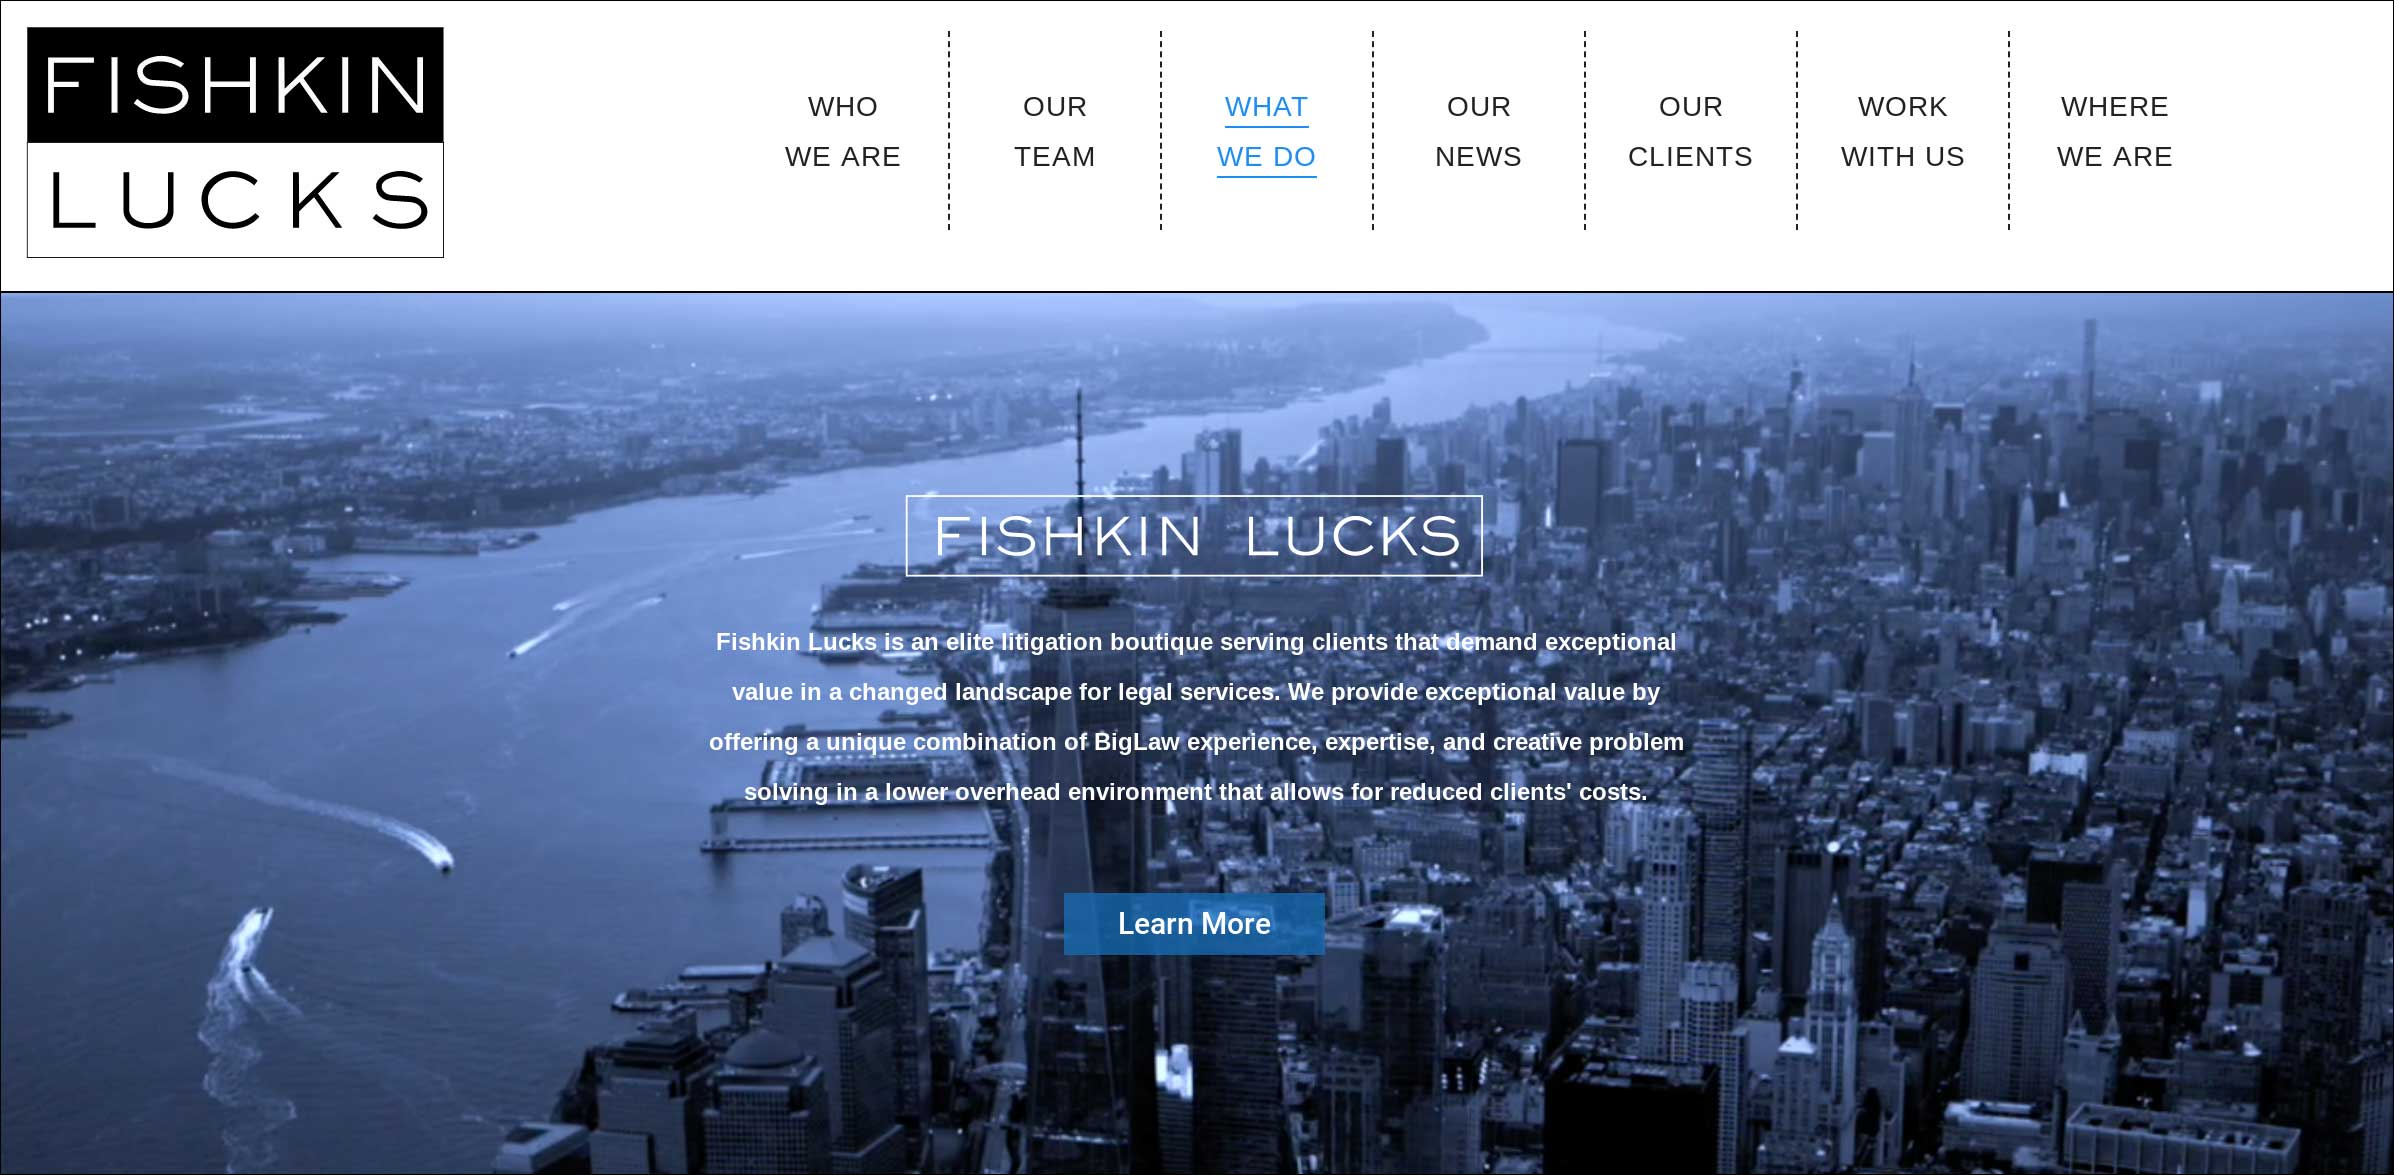 Fishkin Lucks - old website design